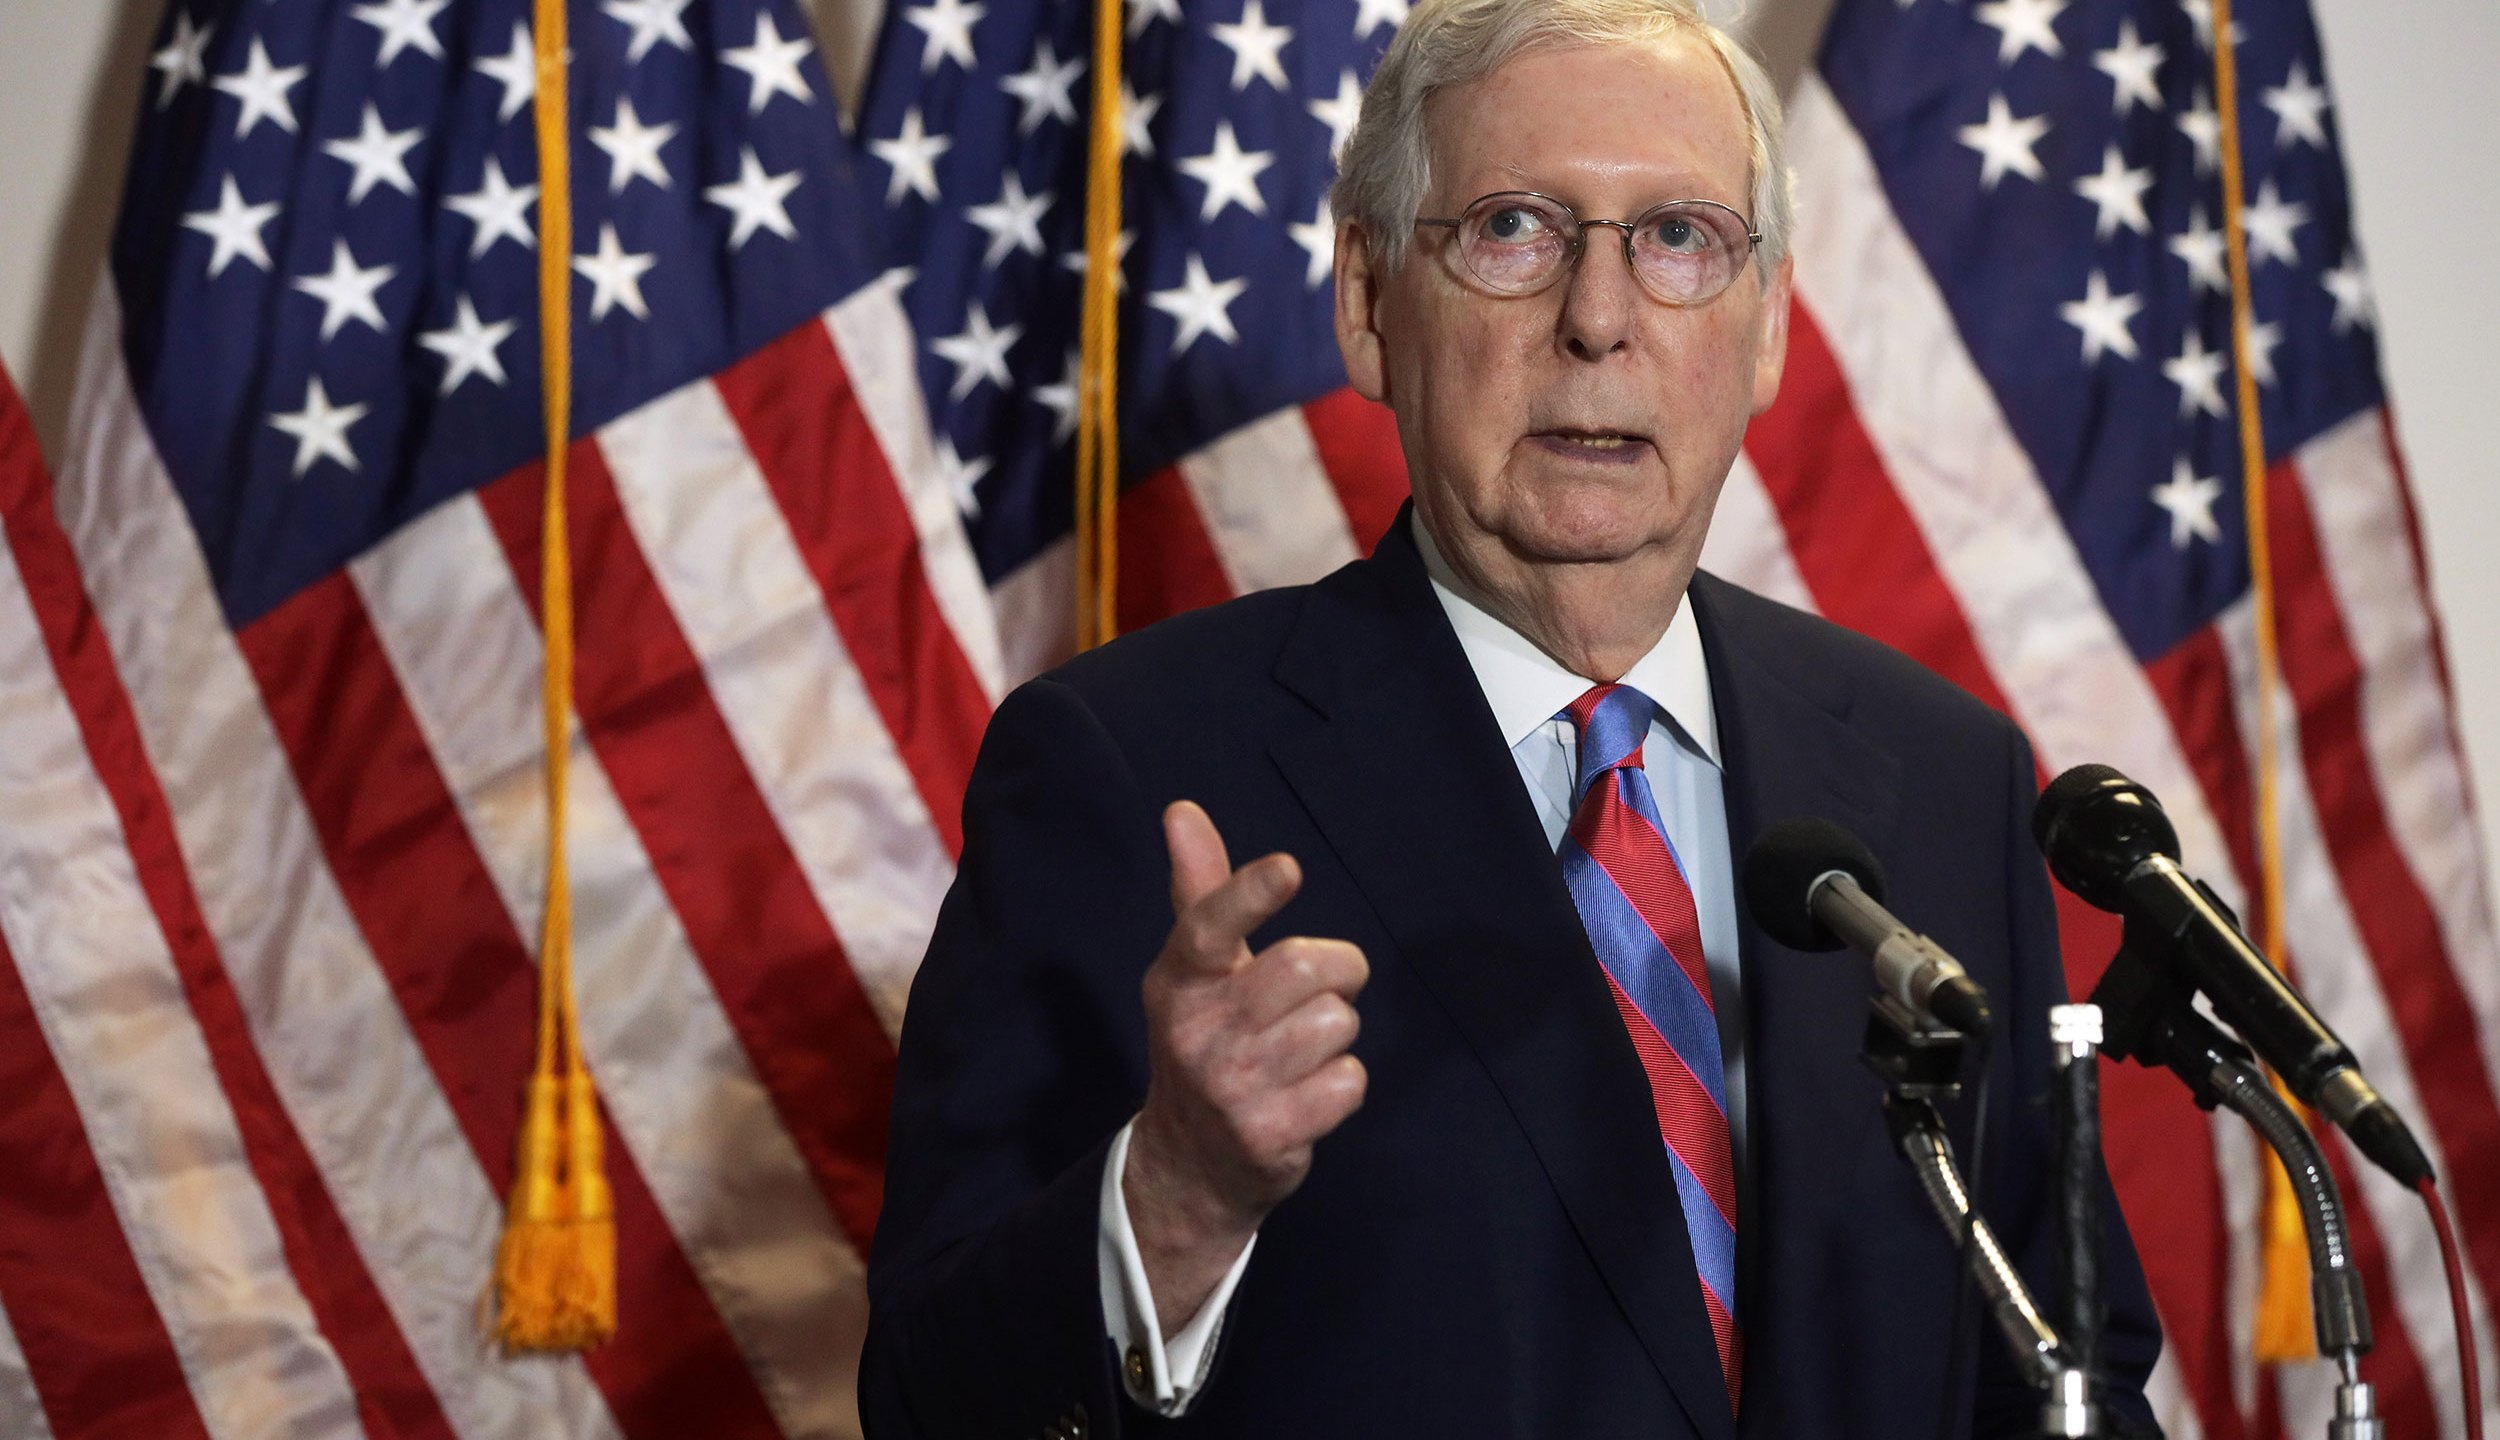 Senate Majority Leader Sen. Mitch McConnell speaks to members of the press after the weekly Senate Republican Policy Luncheon at Hart Senate Office Building May 12, 2020 on Capitol Hill in Washington, DC. (Alex Wong/Getty Images via CNN Wire)